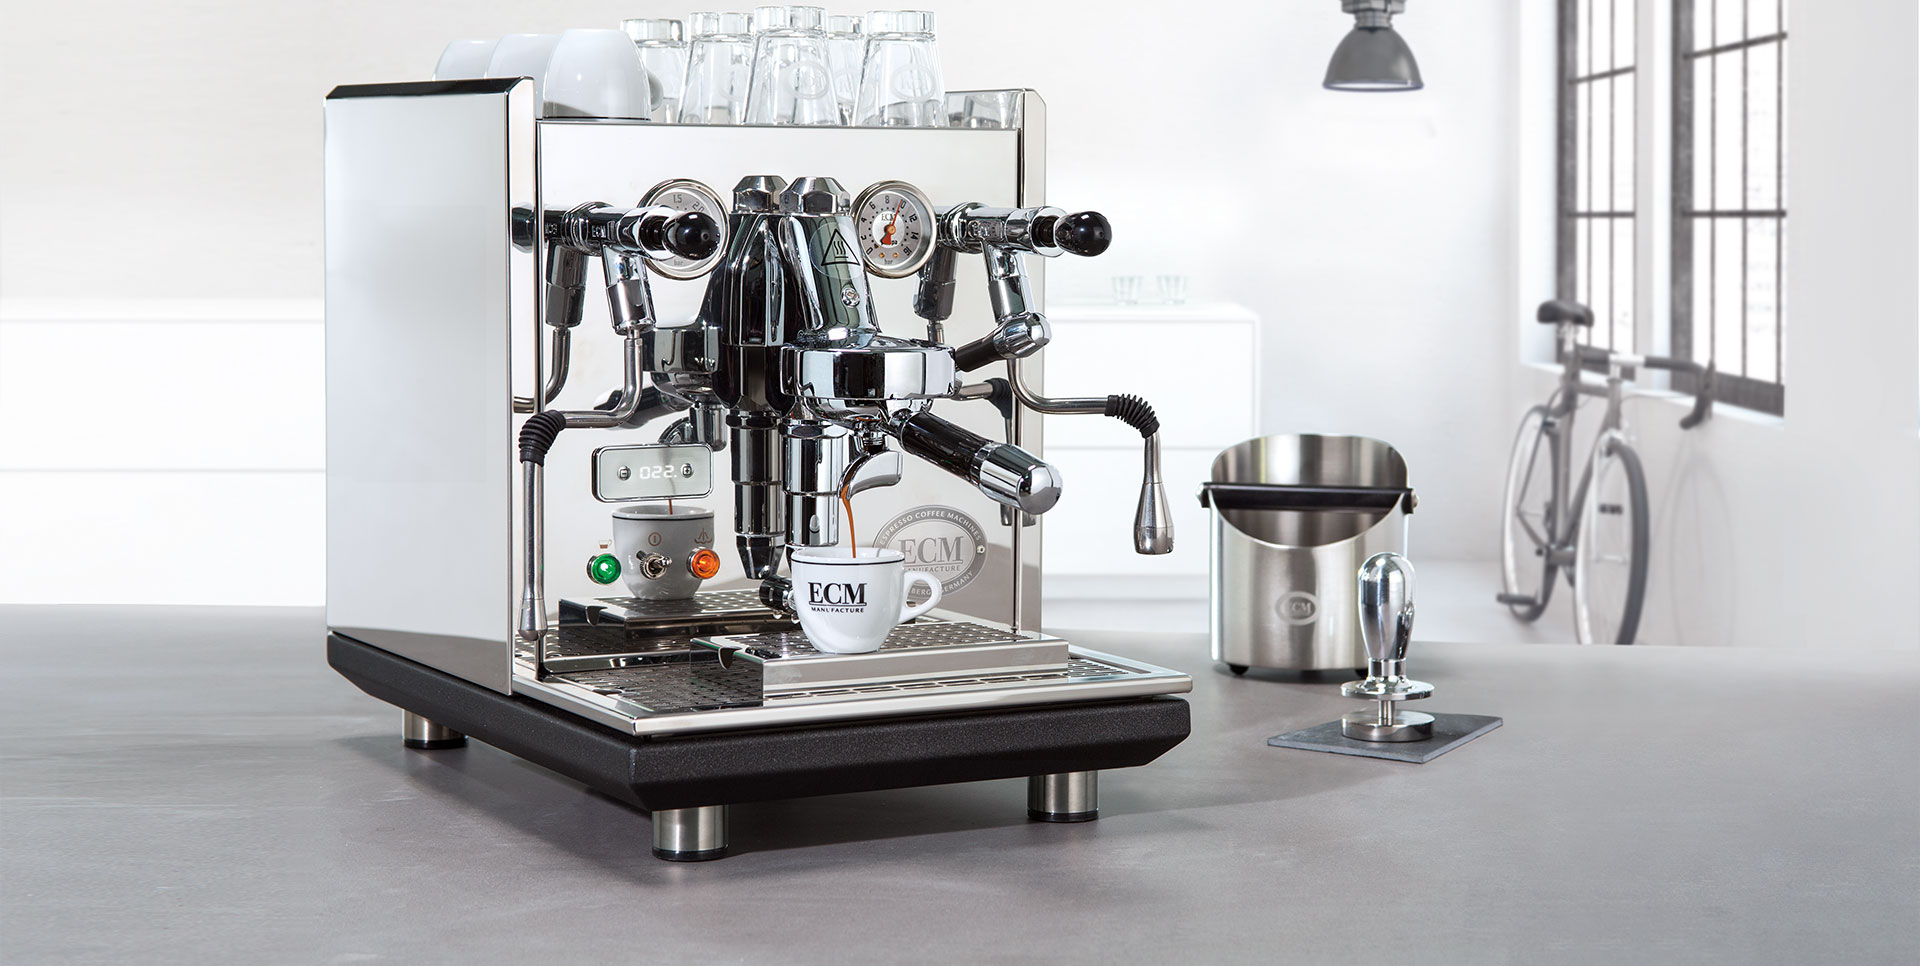 espresso coffee machines manufacture gmbh ecm. Black Bedroom Furniture Sets. Home Design Ideas